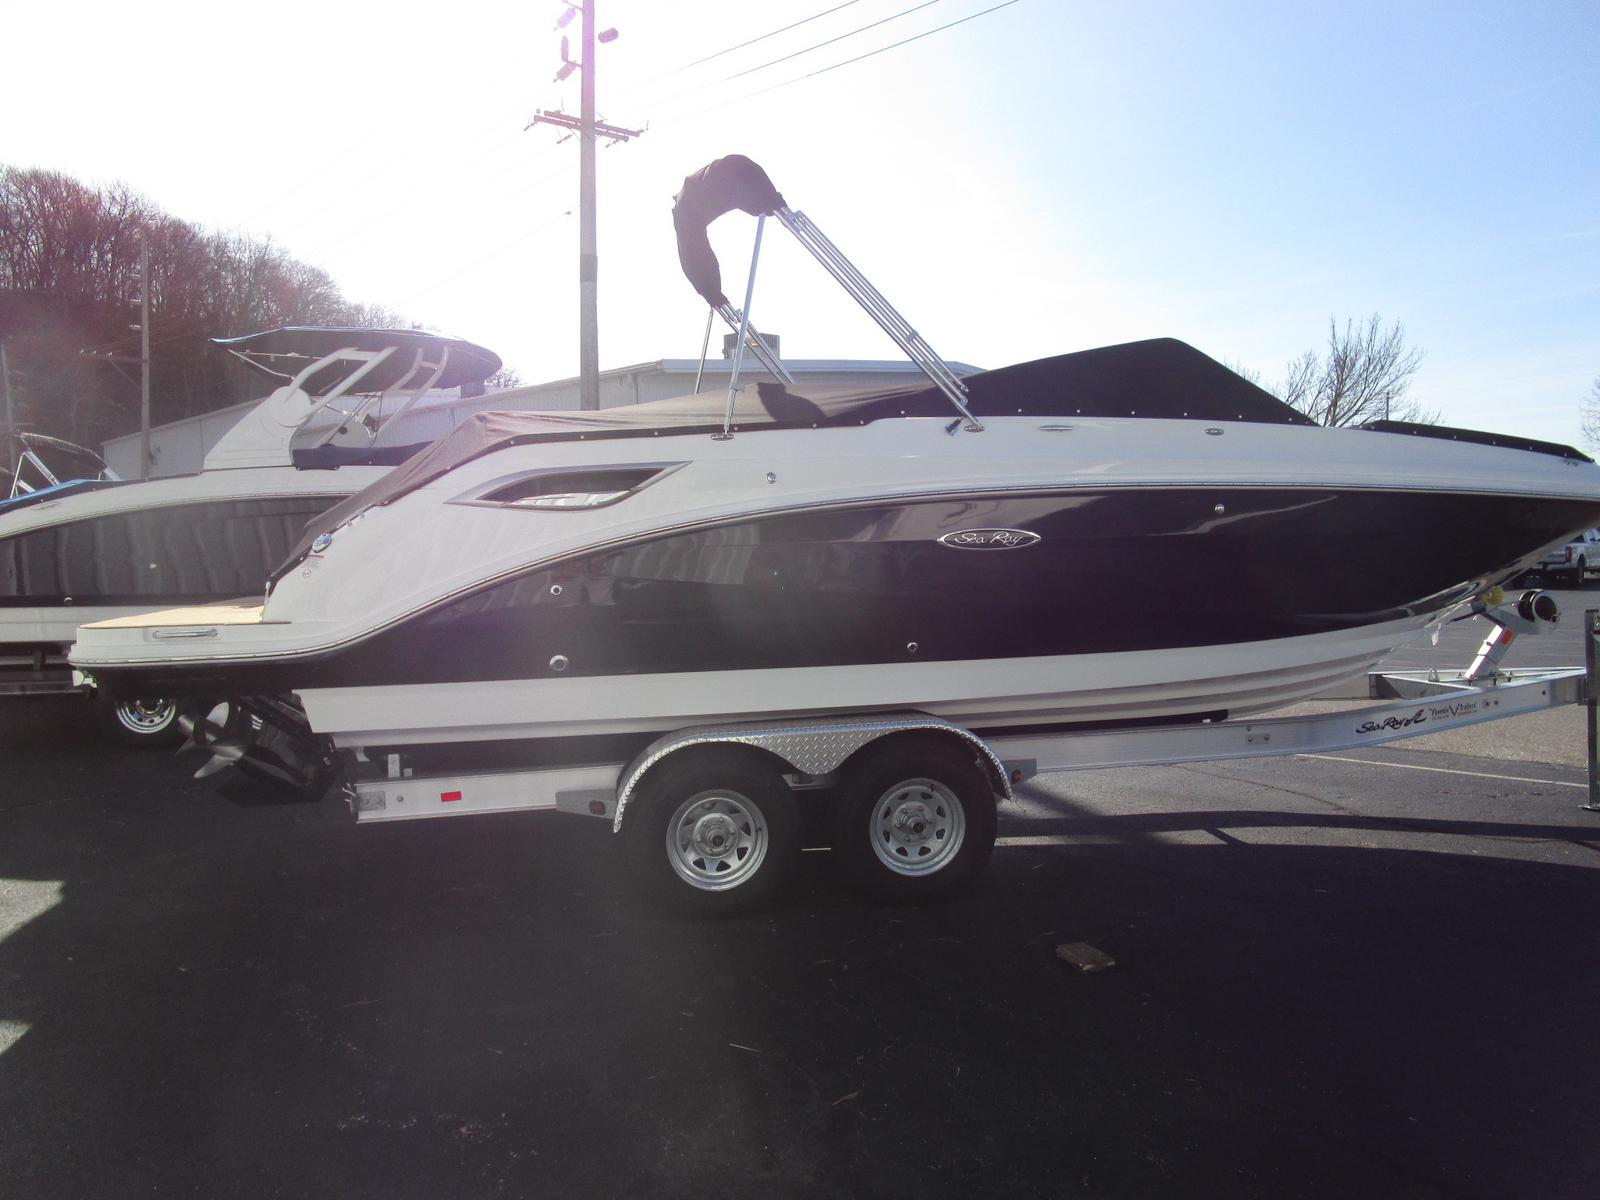 2019 Sea Ray boat for sale, model of the boat is SDX 250 & Image # 1 of 11